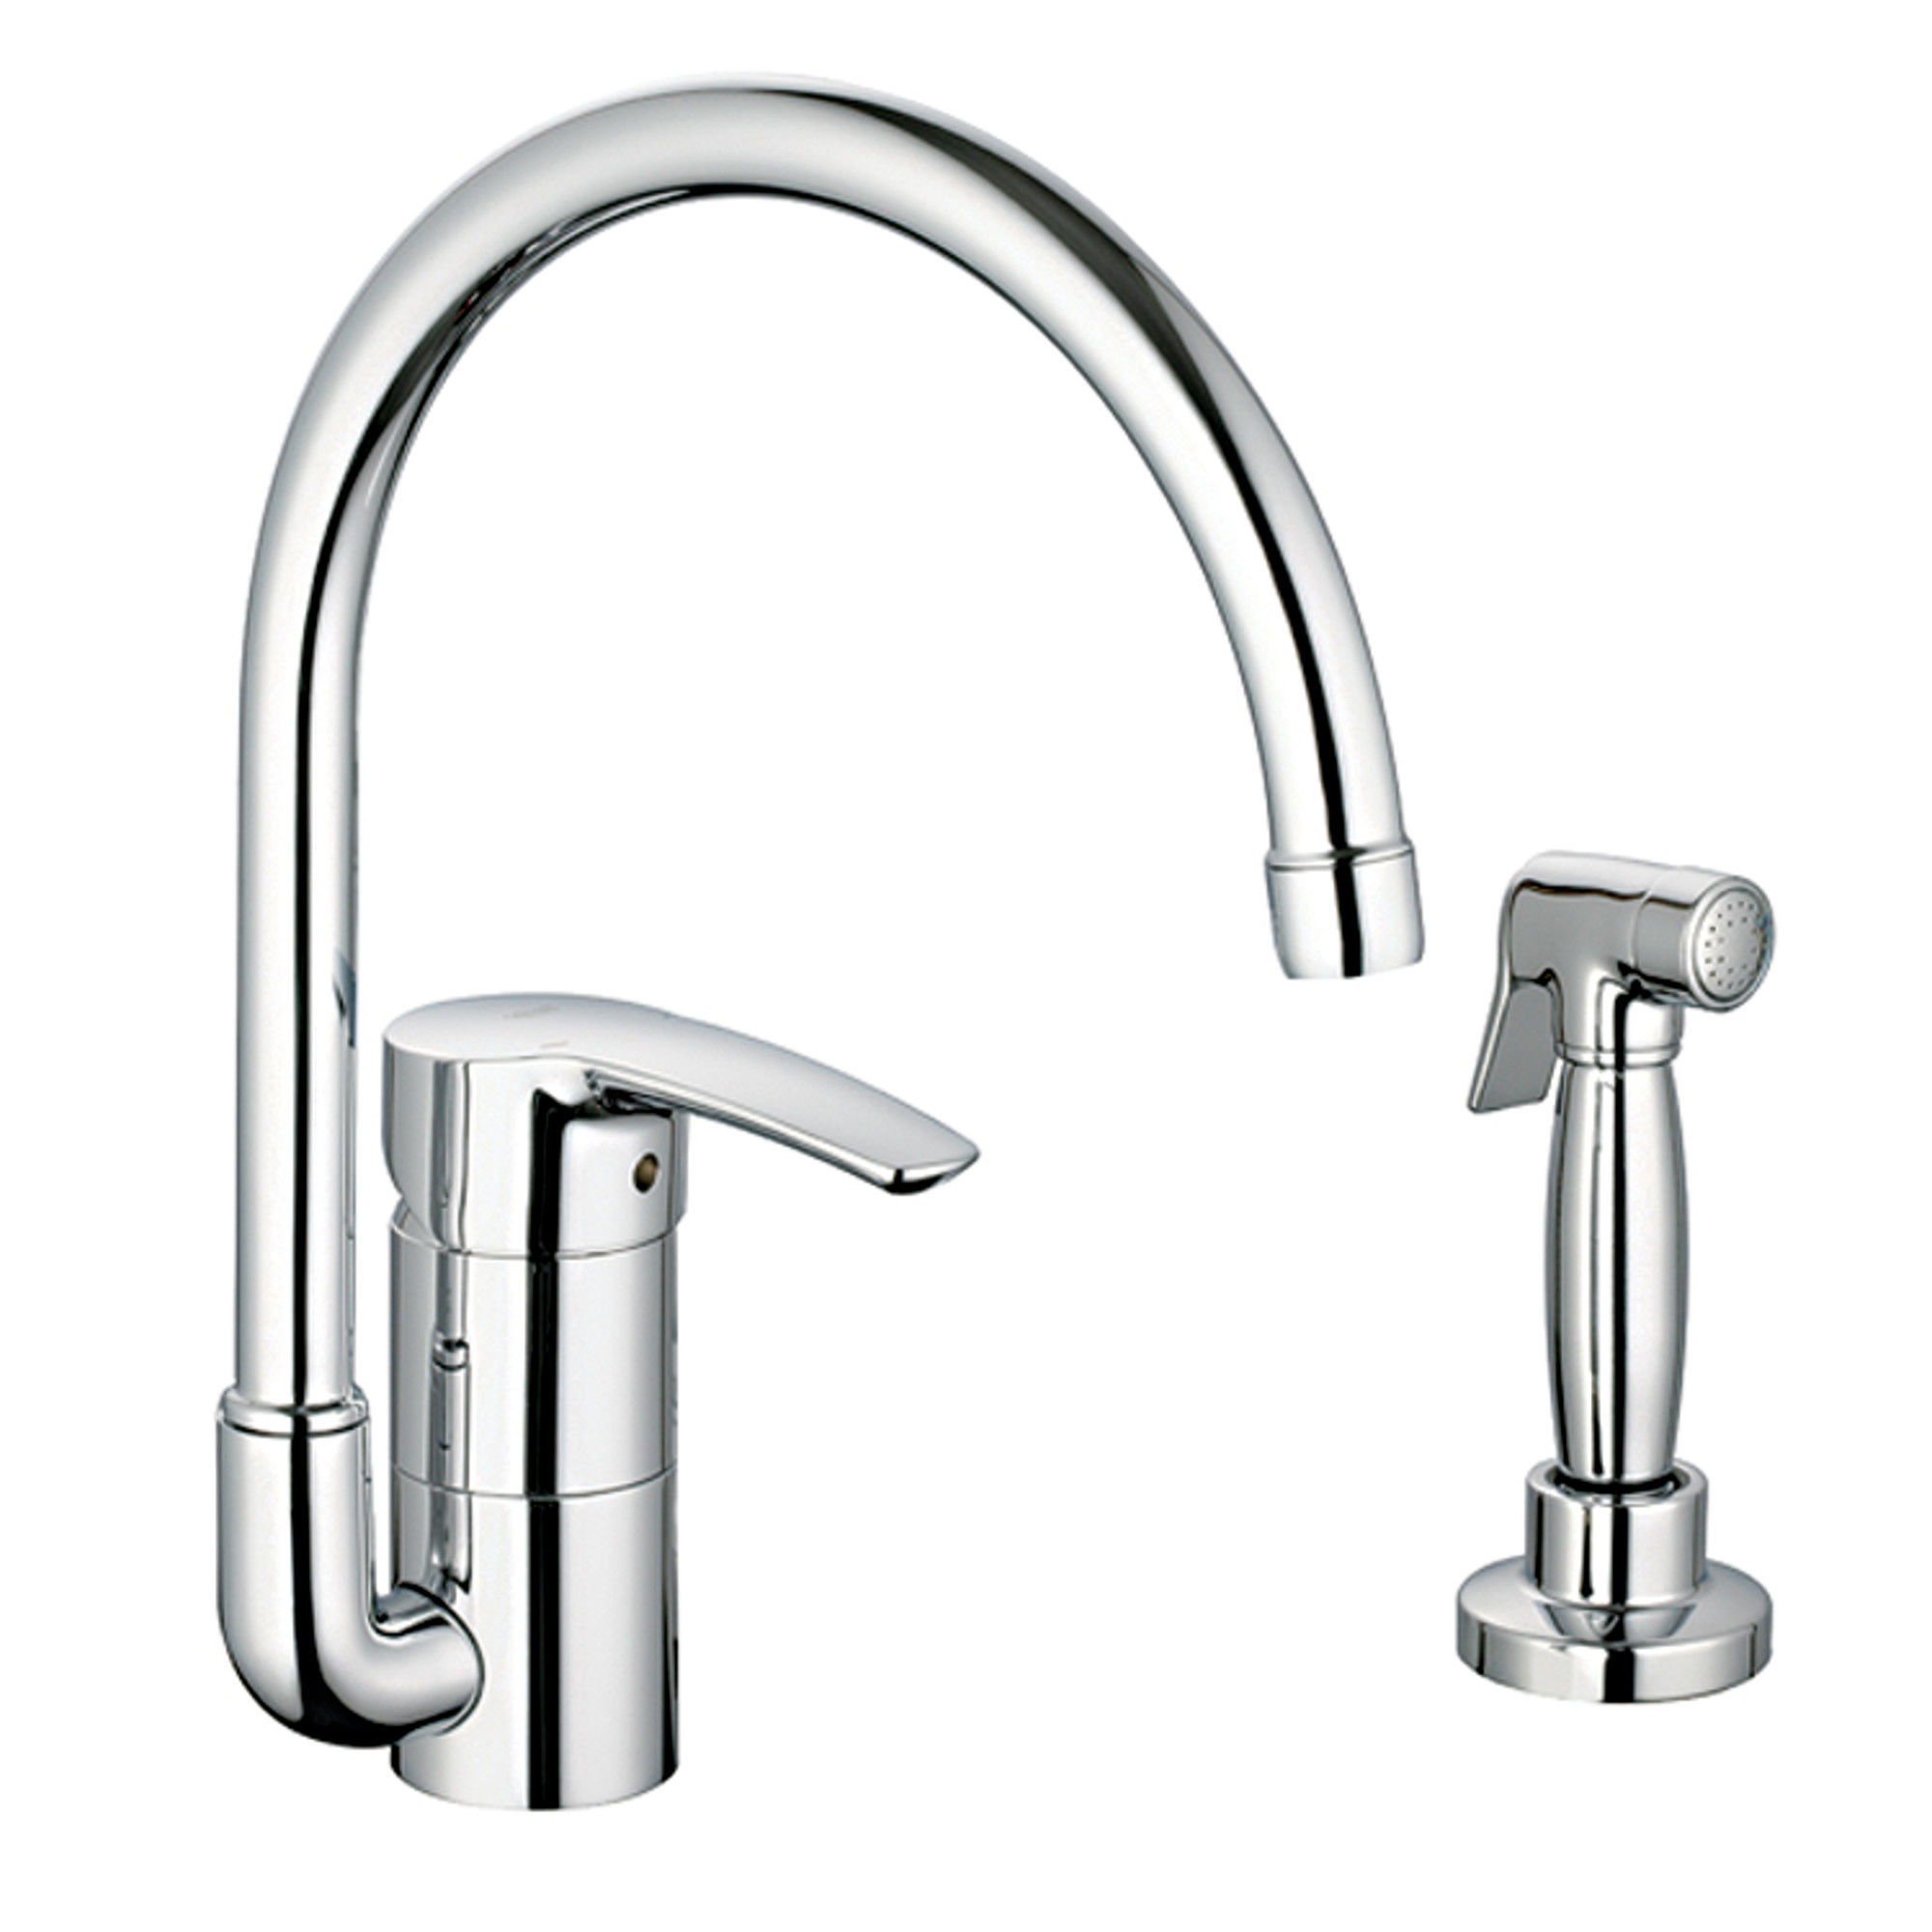 Grohe 33980EN1 Brushed Nickel Eurostyle Kitchen Faucet - Includes ...